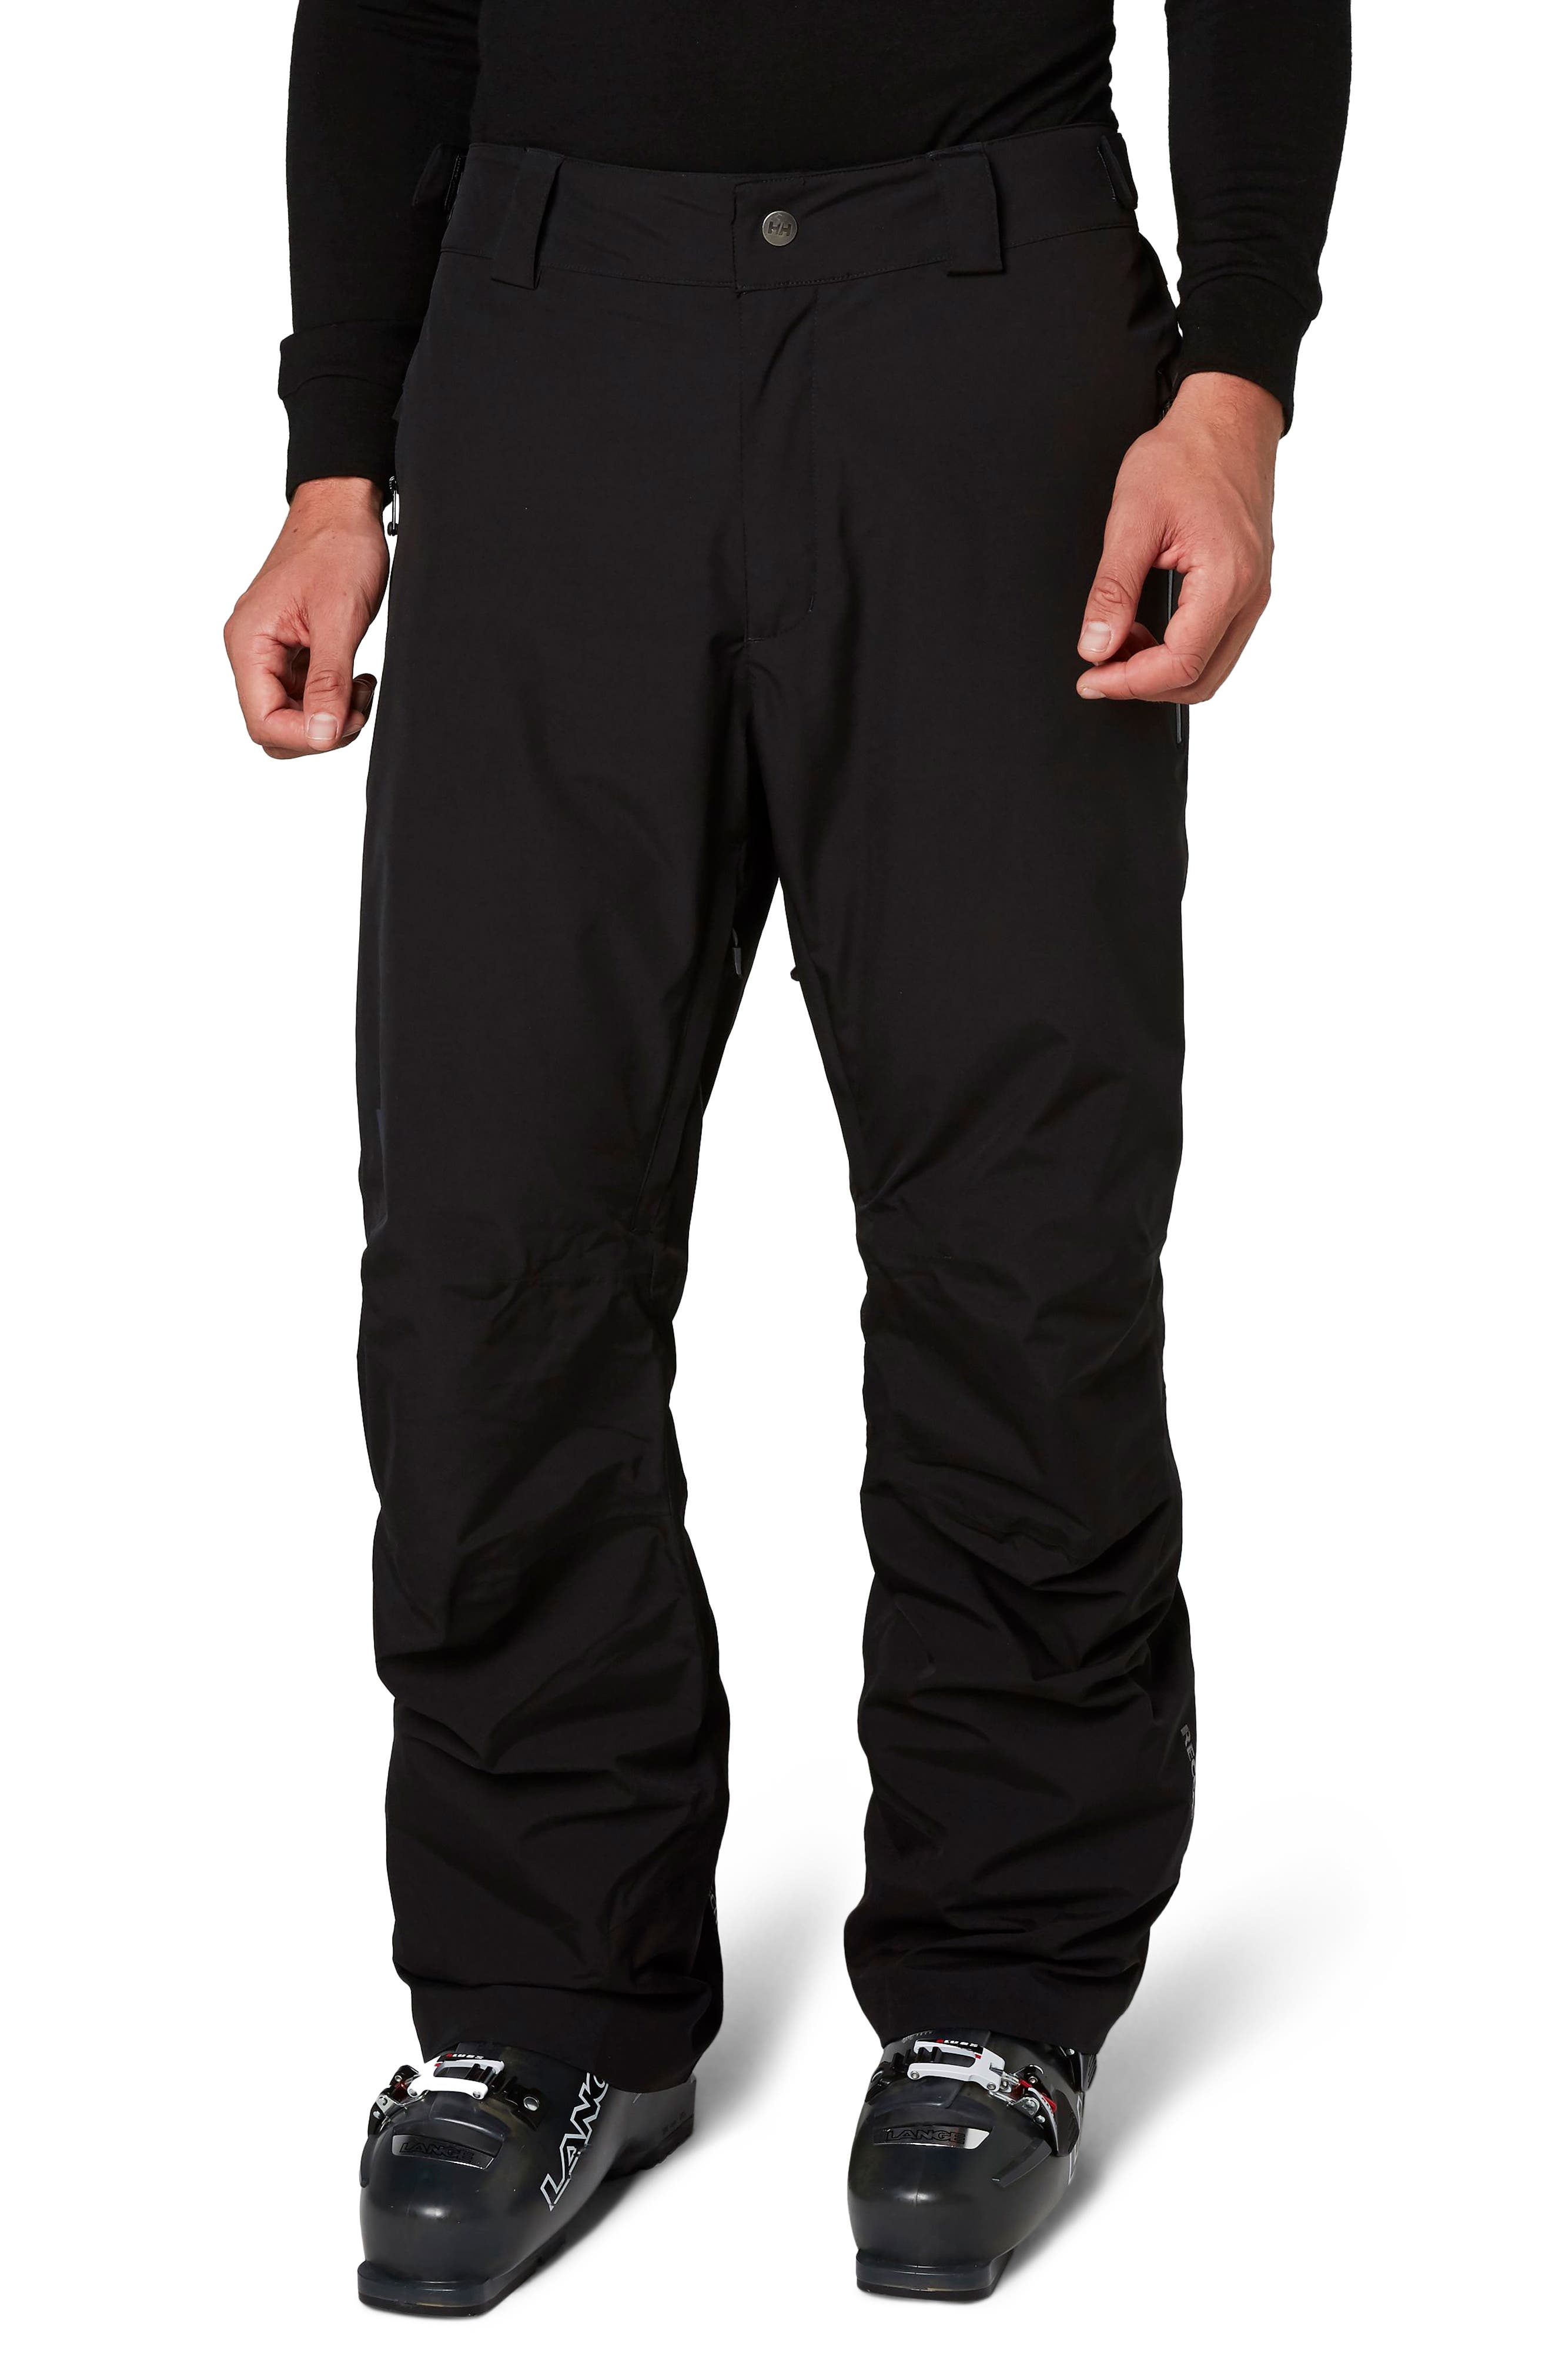 Alternate Image 1 Selected - Helly Hansen Legendary - Short Waterproof PrimaLoft Insulated Snow Pants